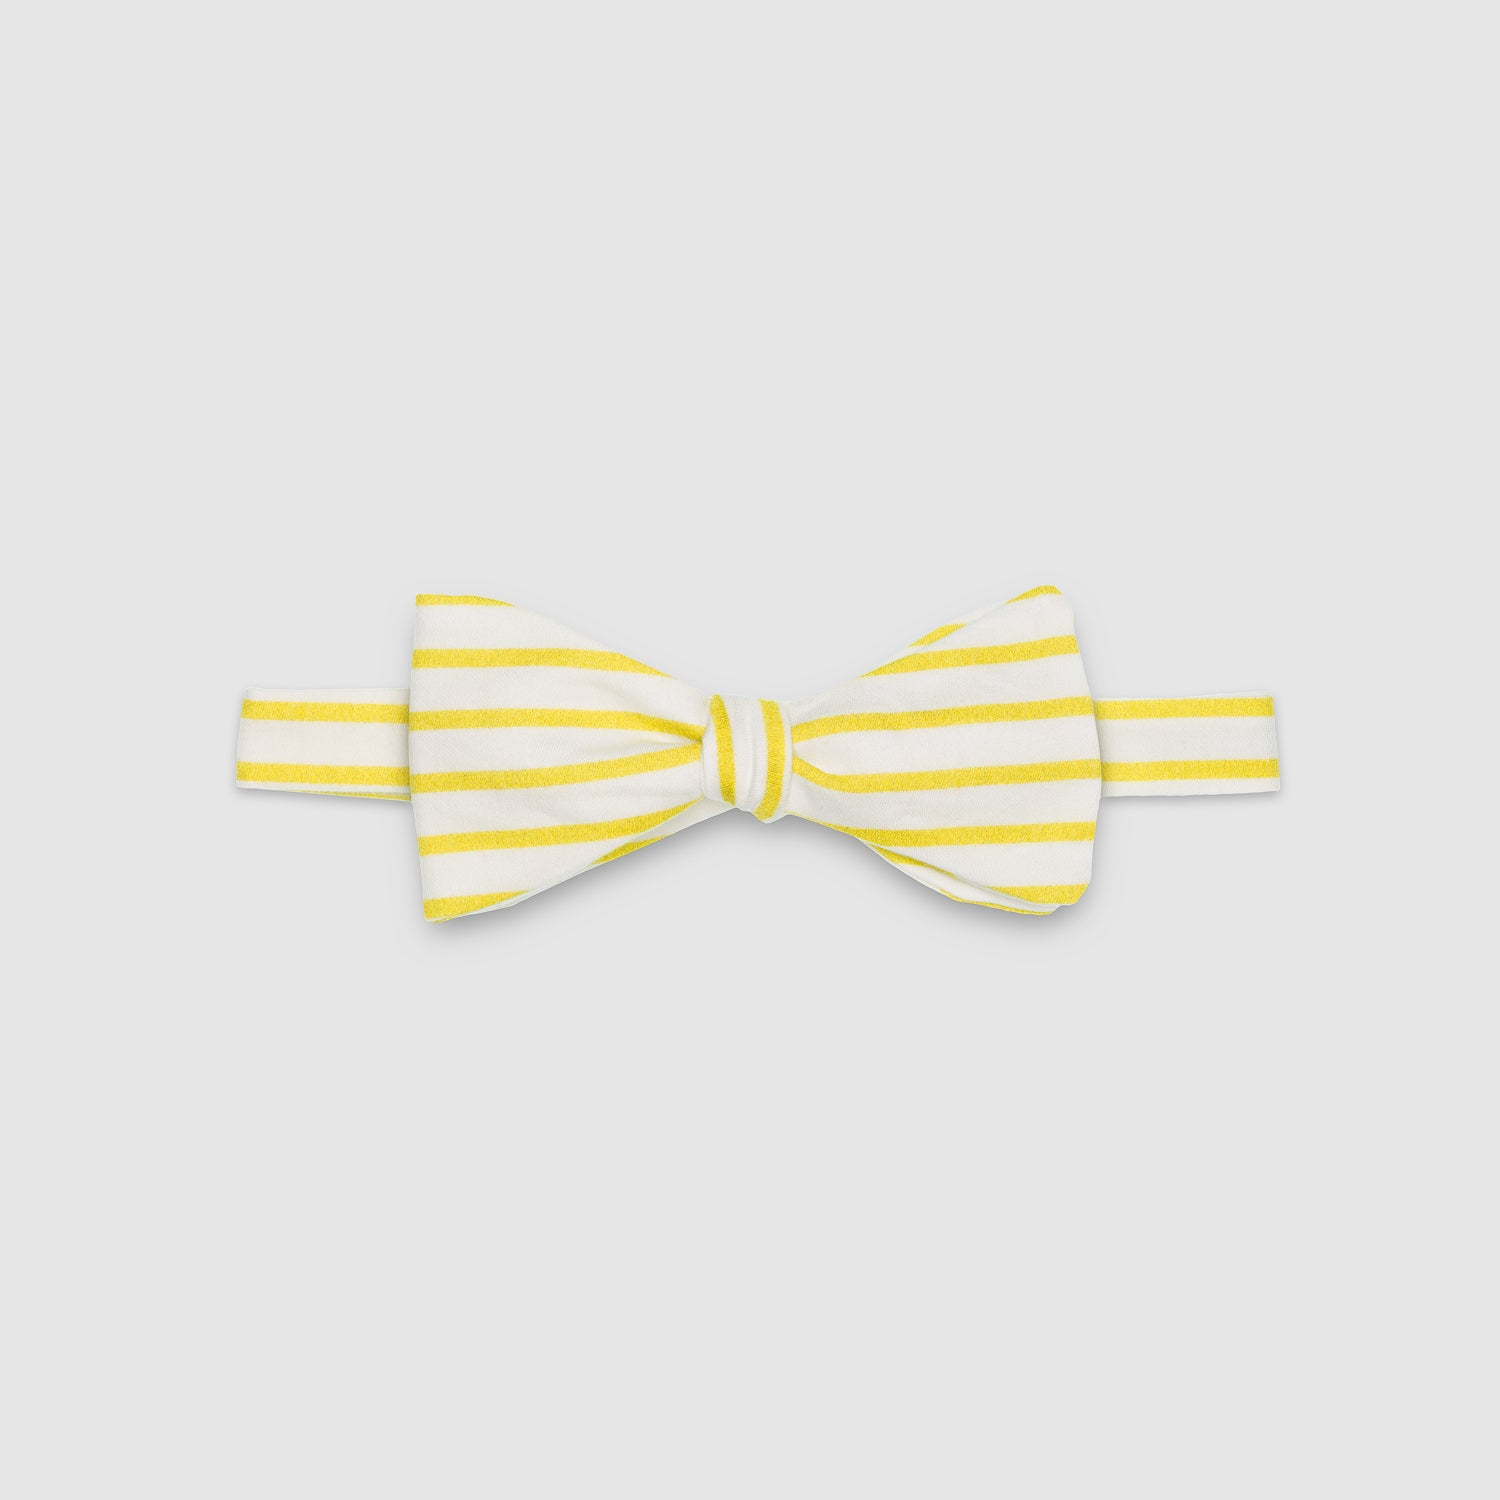 CALLIOPE – the bow tie